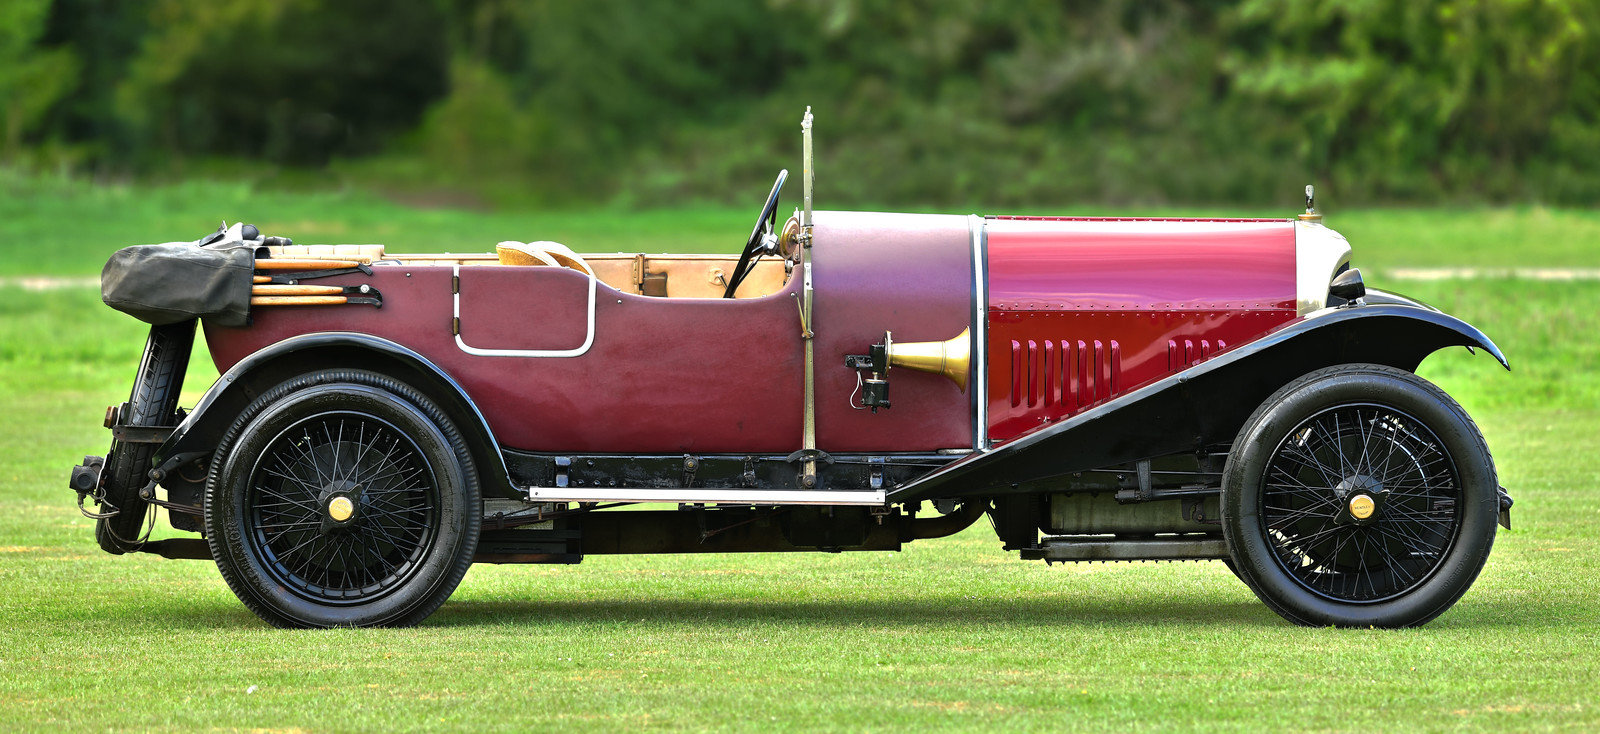 1926 Bentley 3 litre with Vanden Plas Style Body For Sale (picture 2 of 6)